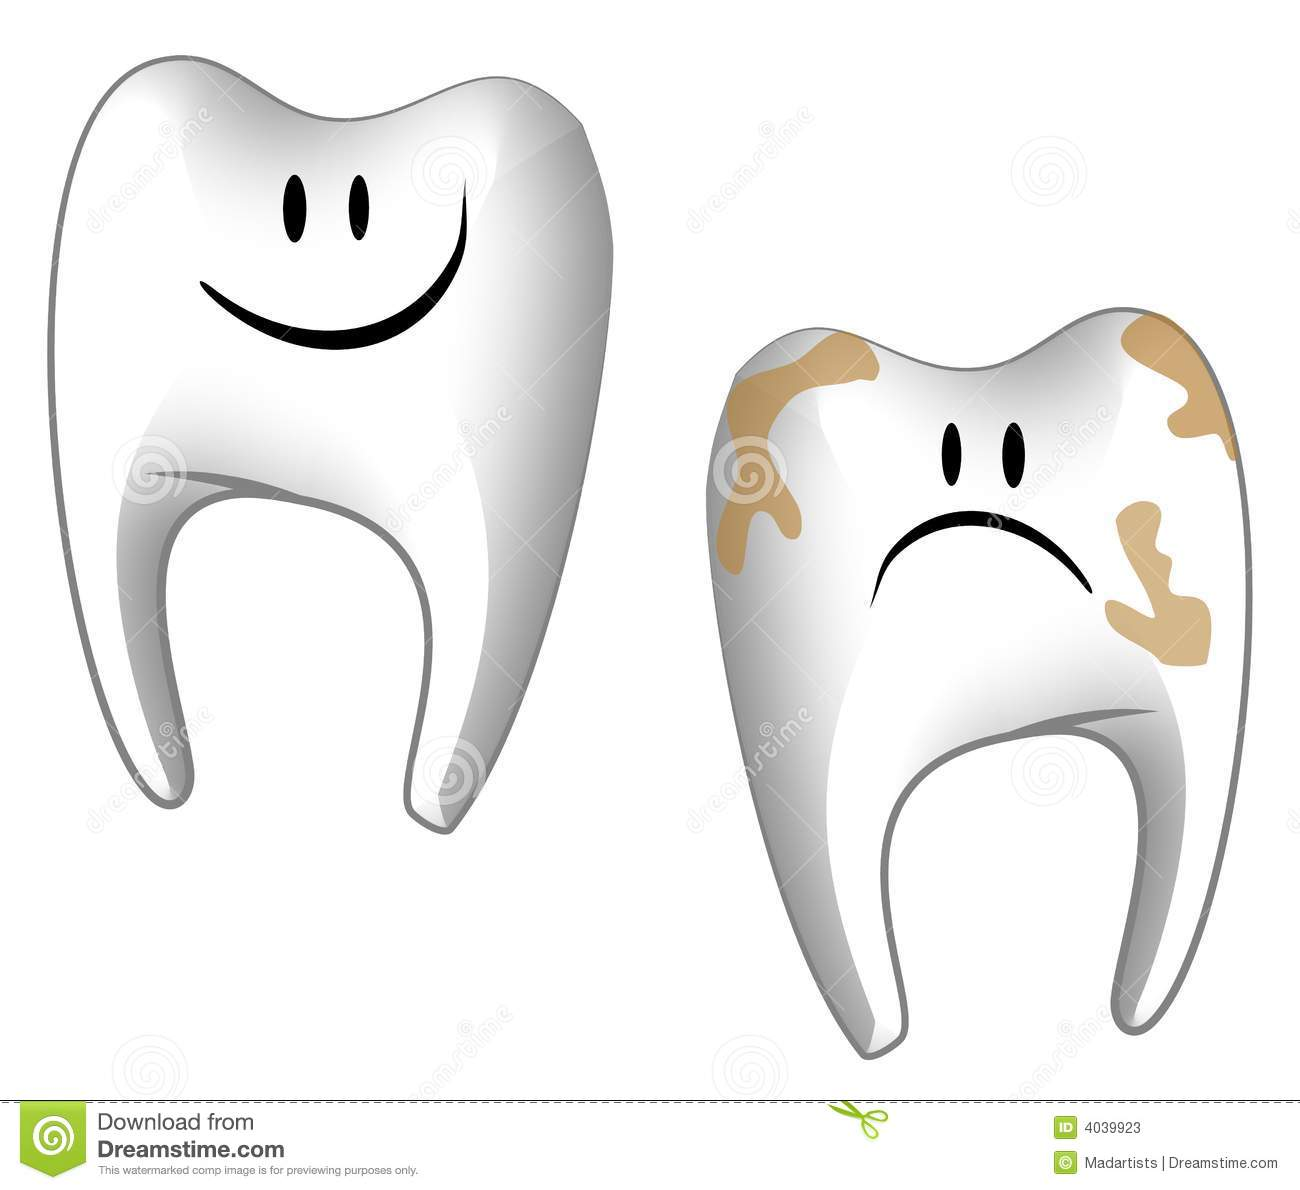 Clip Art Illustration Featuring Your Choice Of 2 Cartoonish Teeth